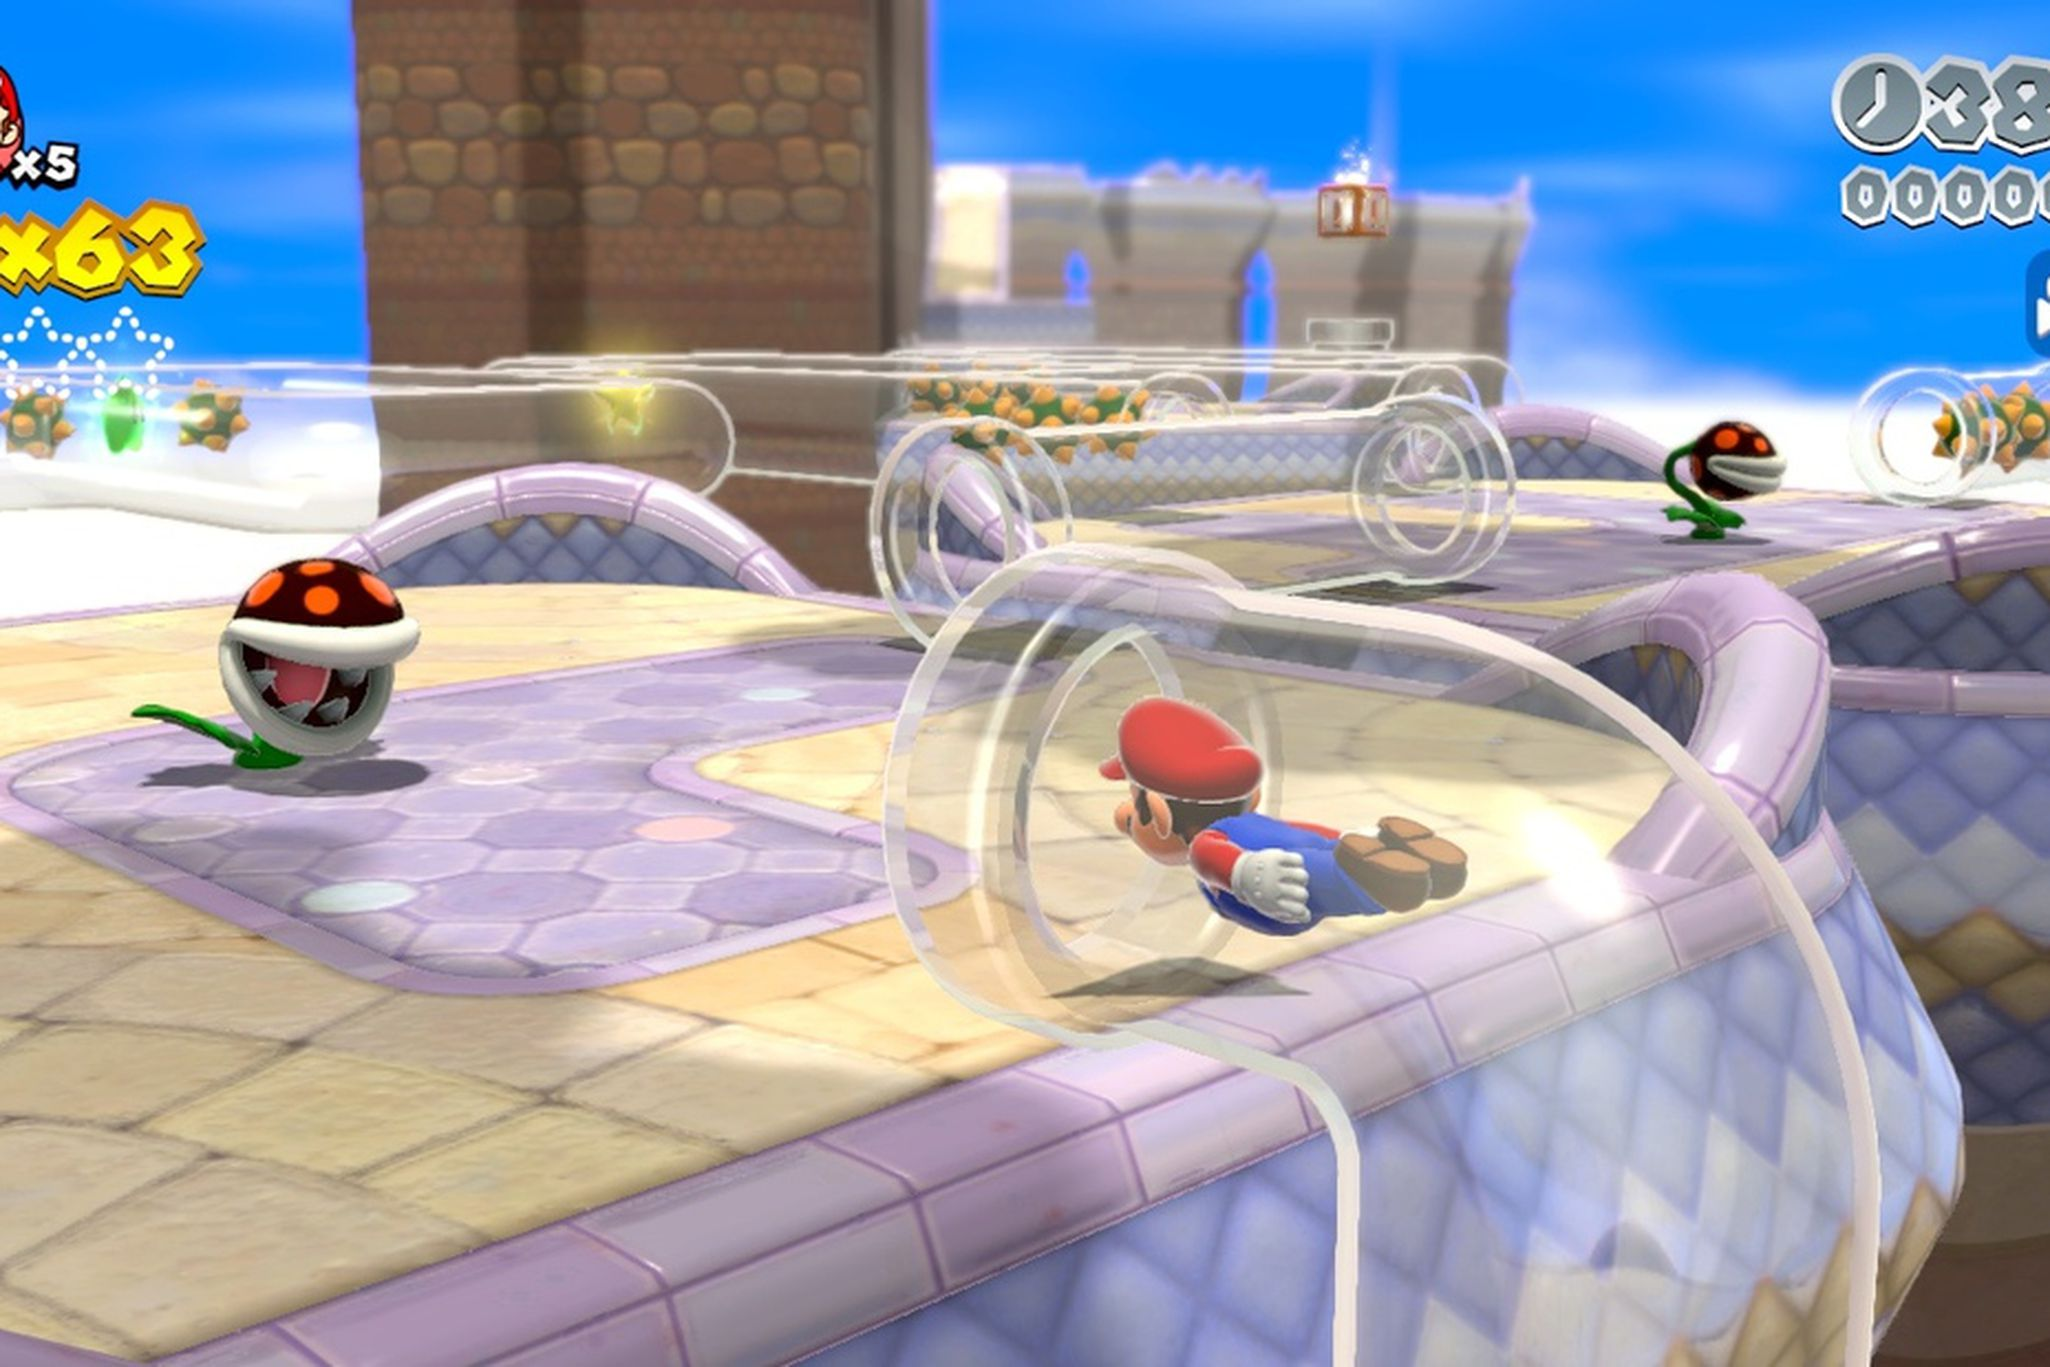 Super Mario 3D World' is the best reason to own a Wii U